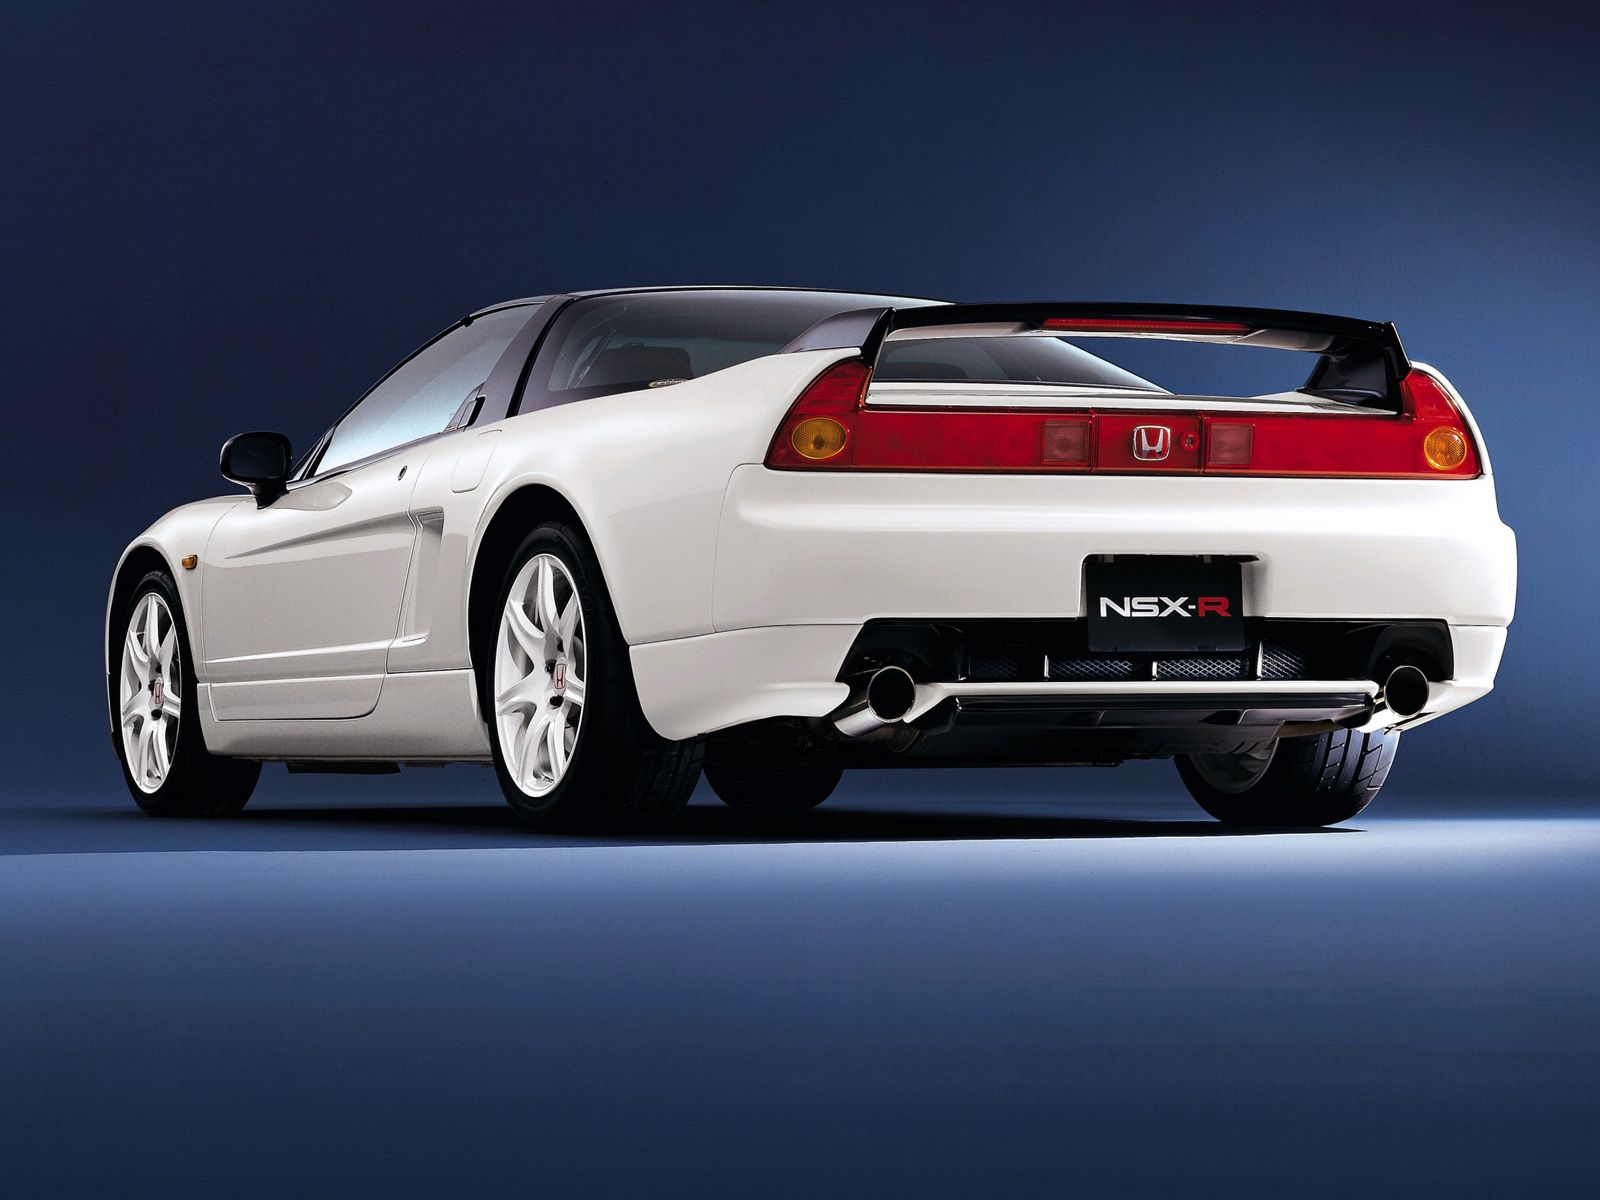 2011 Honda NSX 1 Honda NSX – Now More Revised and Updated